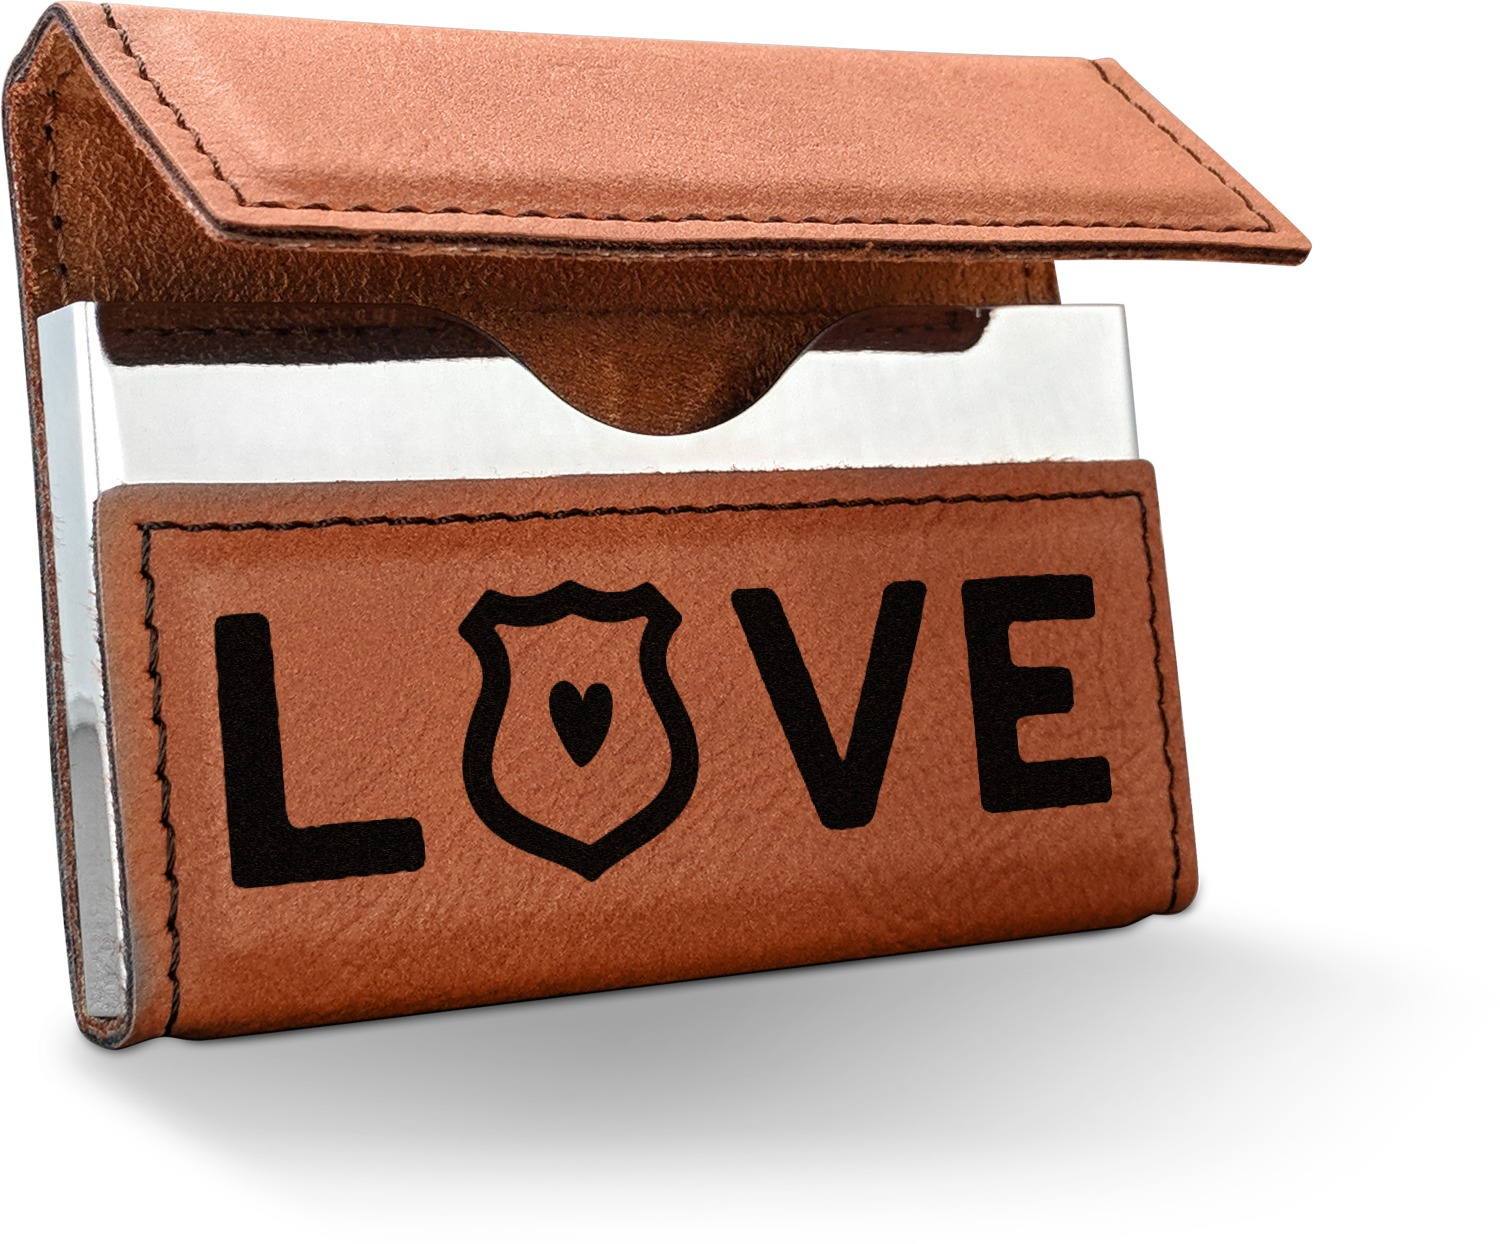 Police quotes and sayings leatherette business card holder police quotes and sayings leatherette business card holder personalized reheart Images